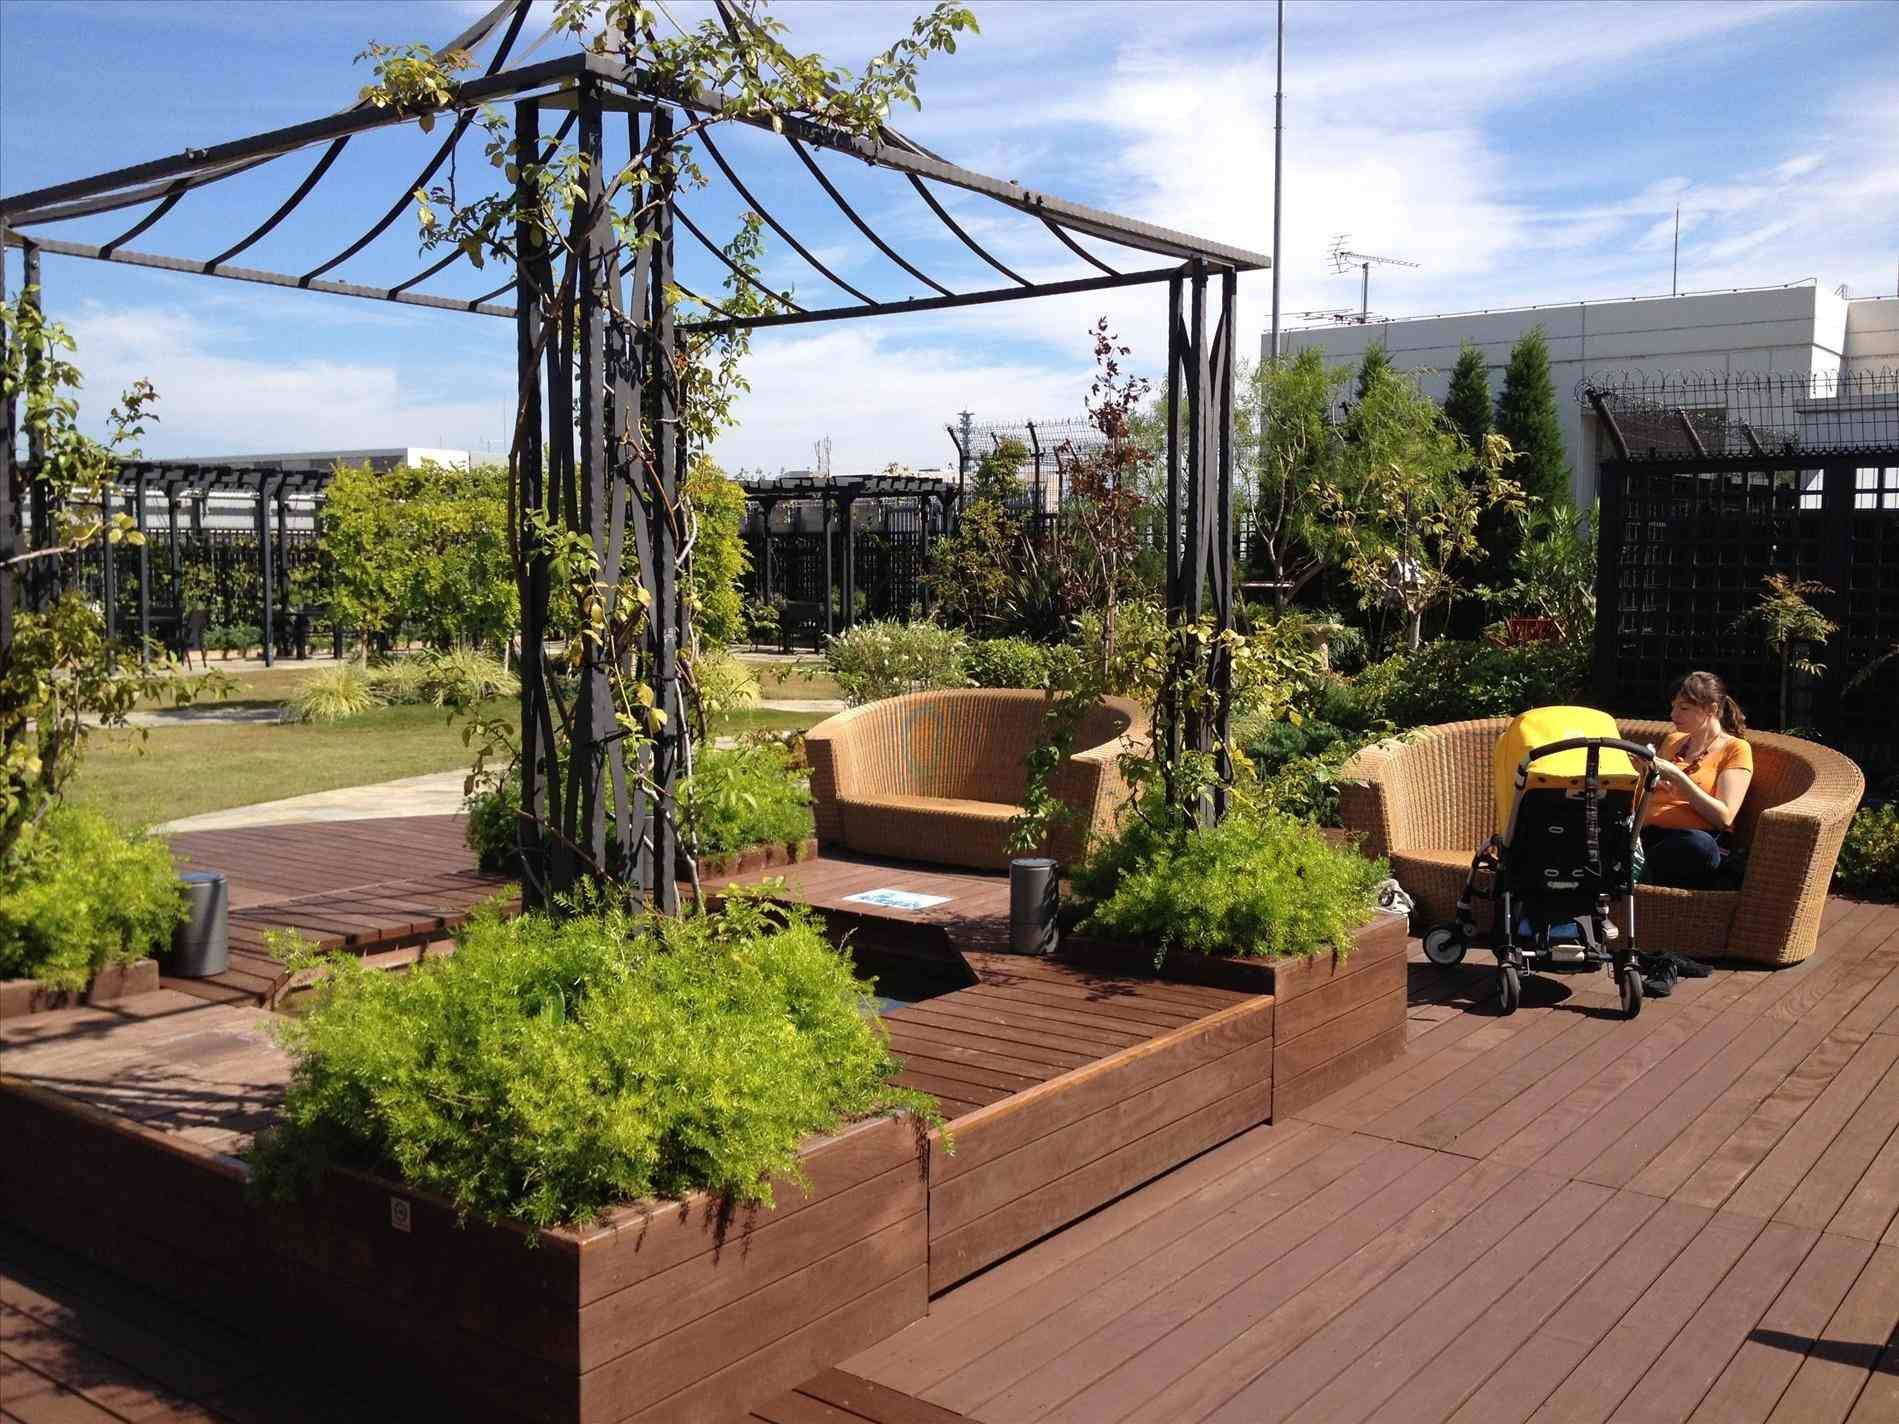 Landscape Roofing Garden Home Roof Ideas Roof Top Garden Design Rooftop Garden Roof Garden